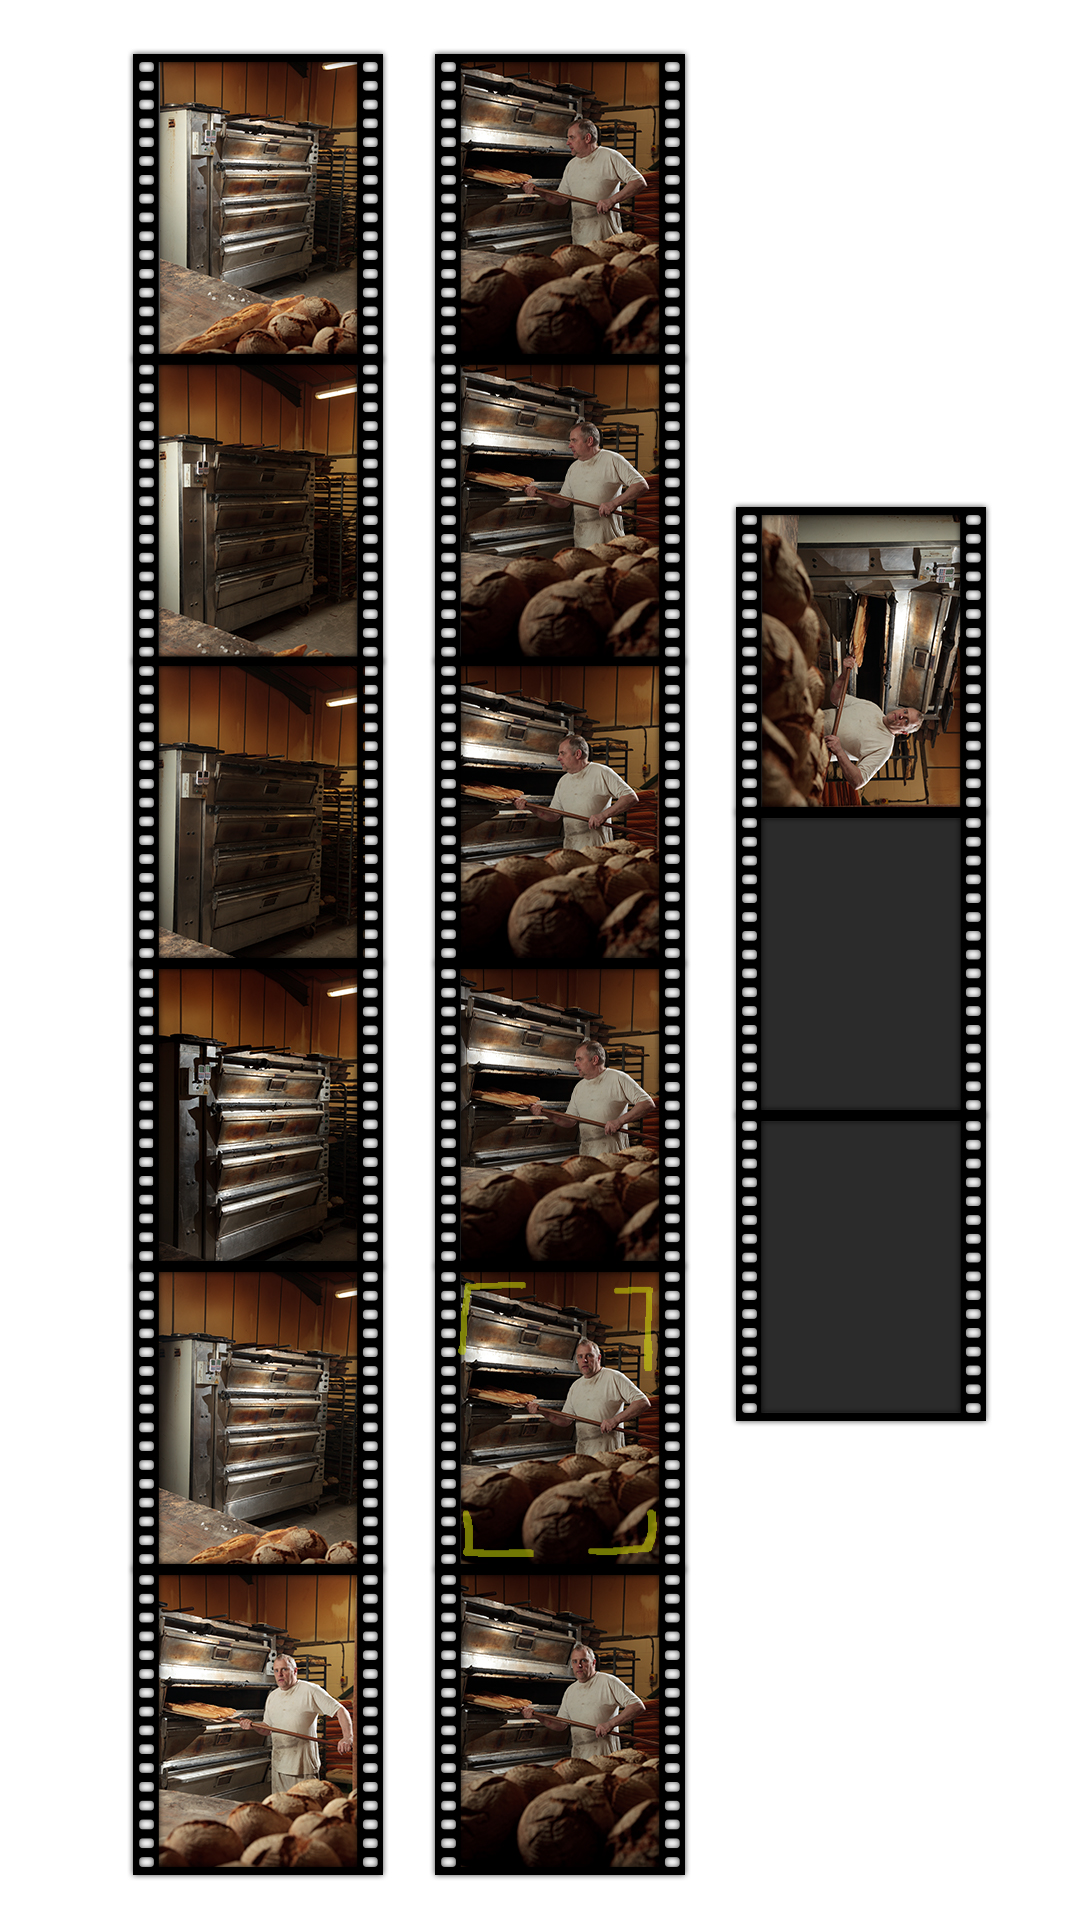 Mocked up film strip showing a shoot at a bakery